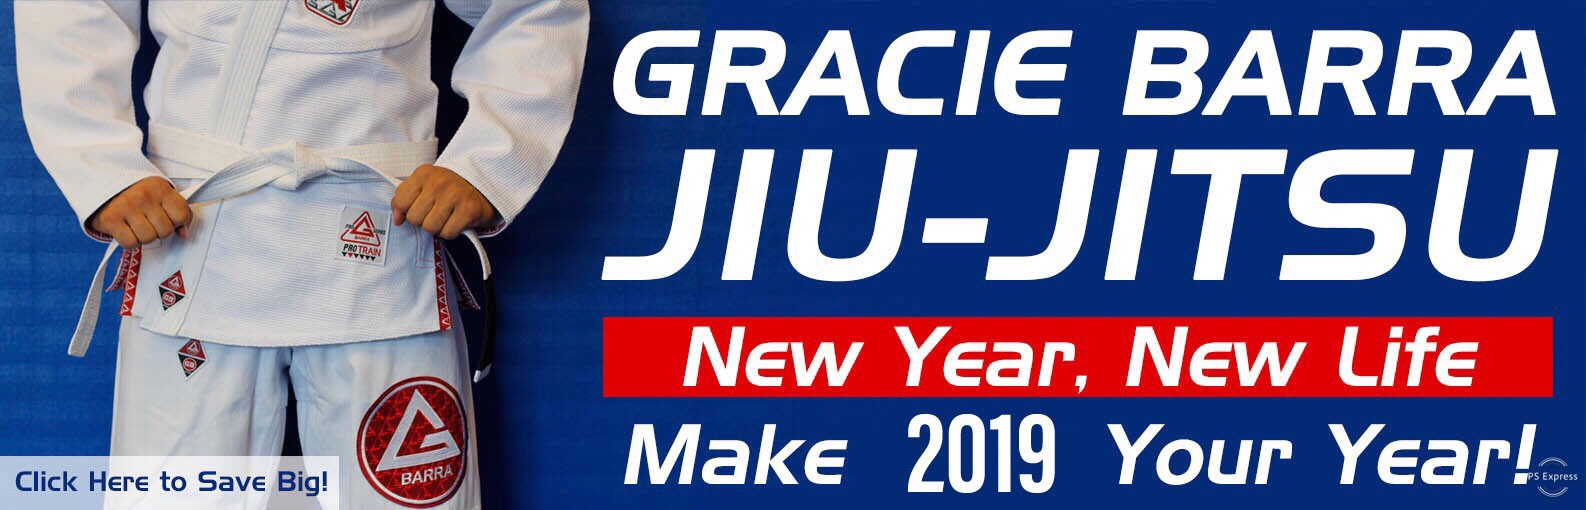 New Year, New Life 2019